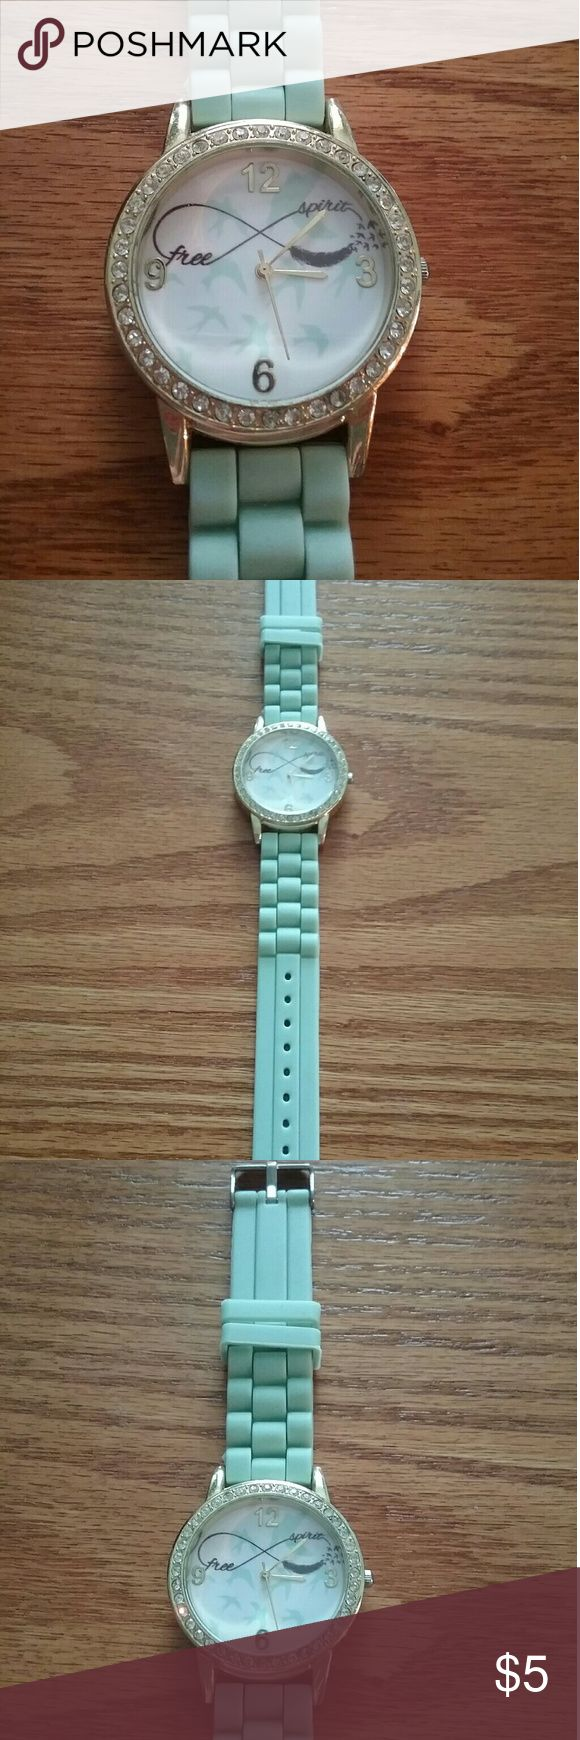 Rue 21 free spirit mint watch Doesn't work, needs a new battery  Very beautiful though Accessories Watches